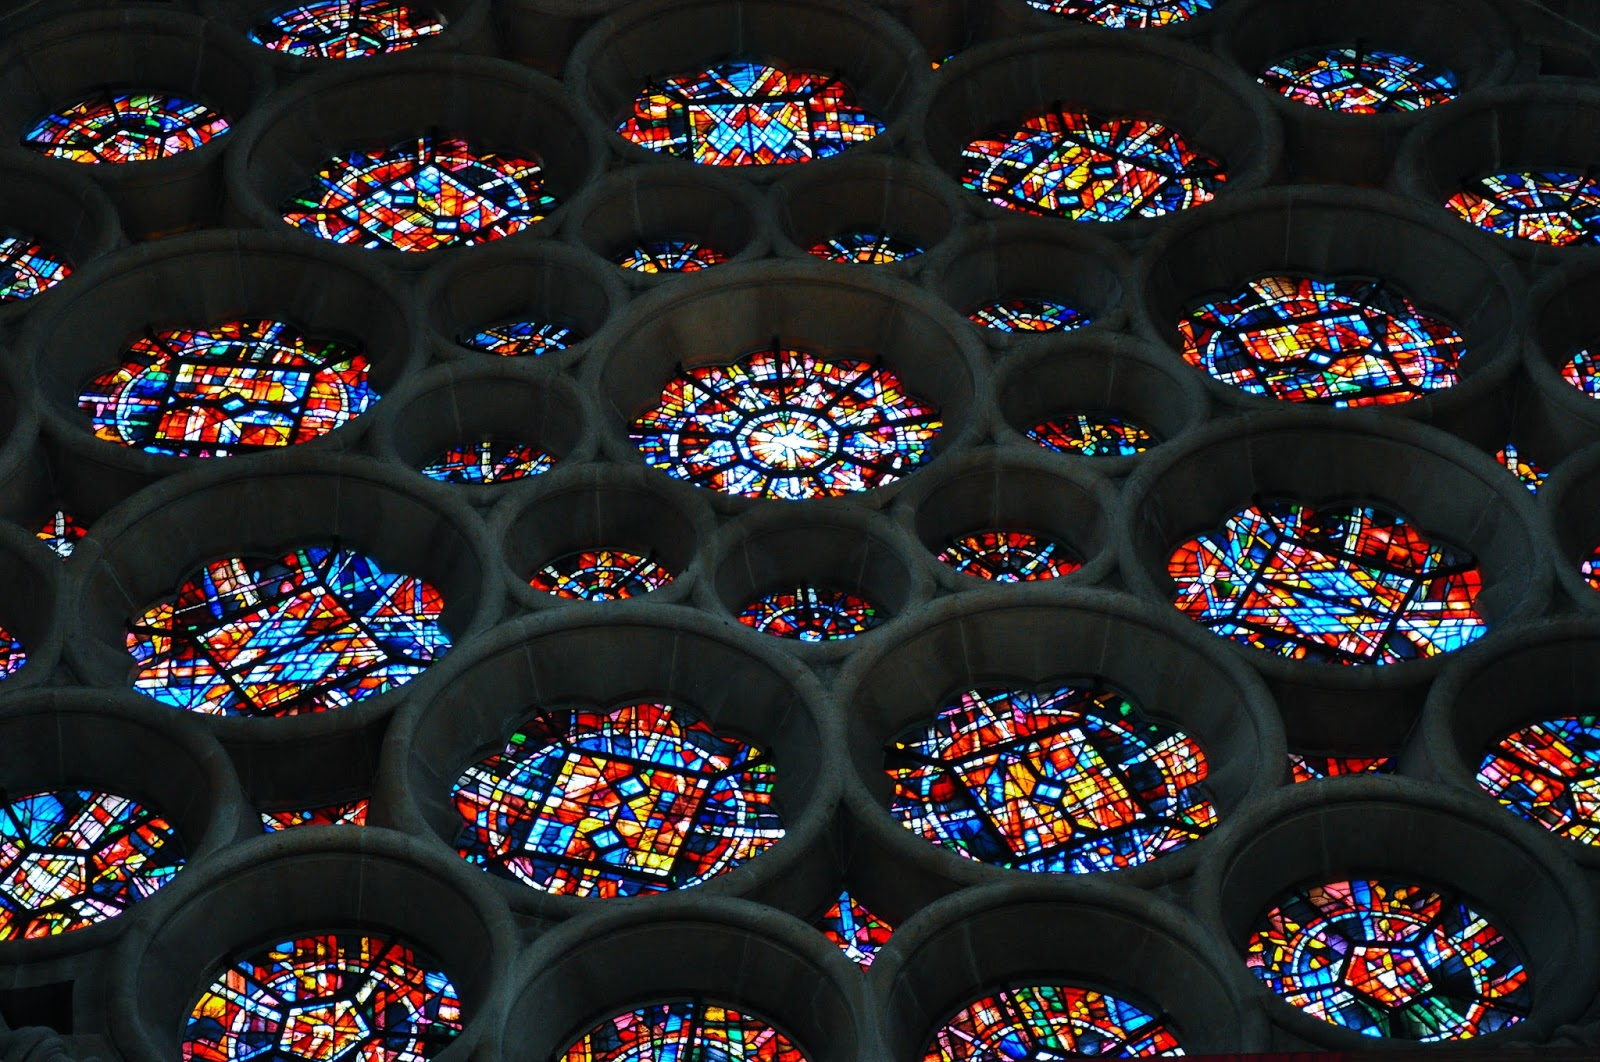 Close-up of the stained glass rosette, St. Albans Cathedral, St. Albans, Herts, England